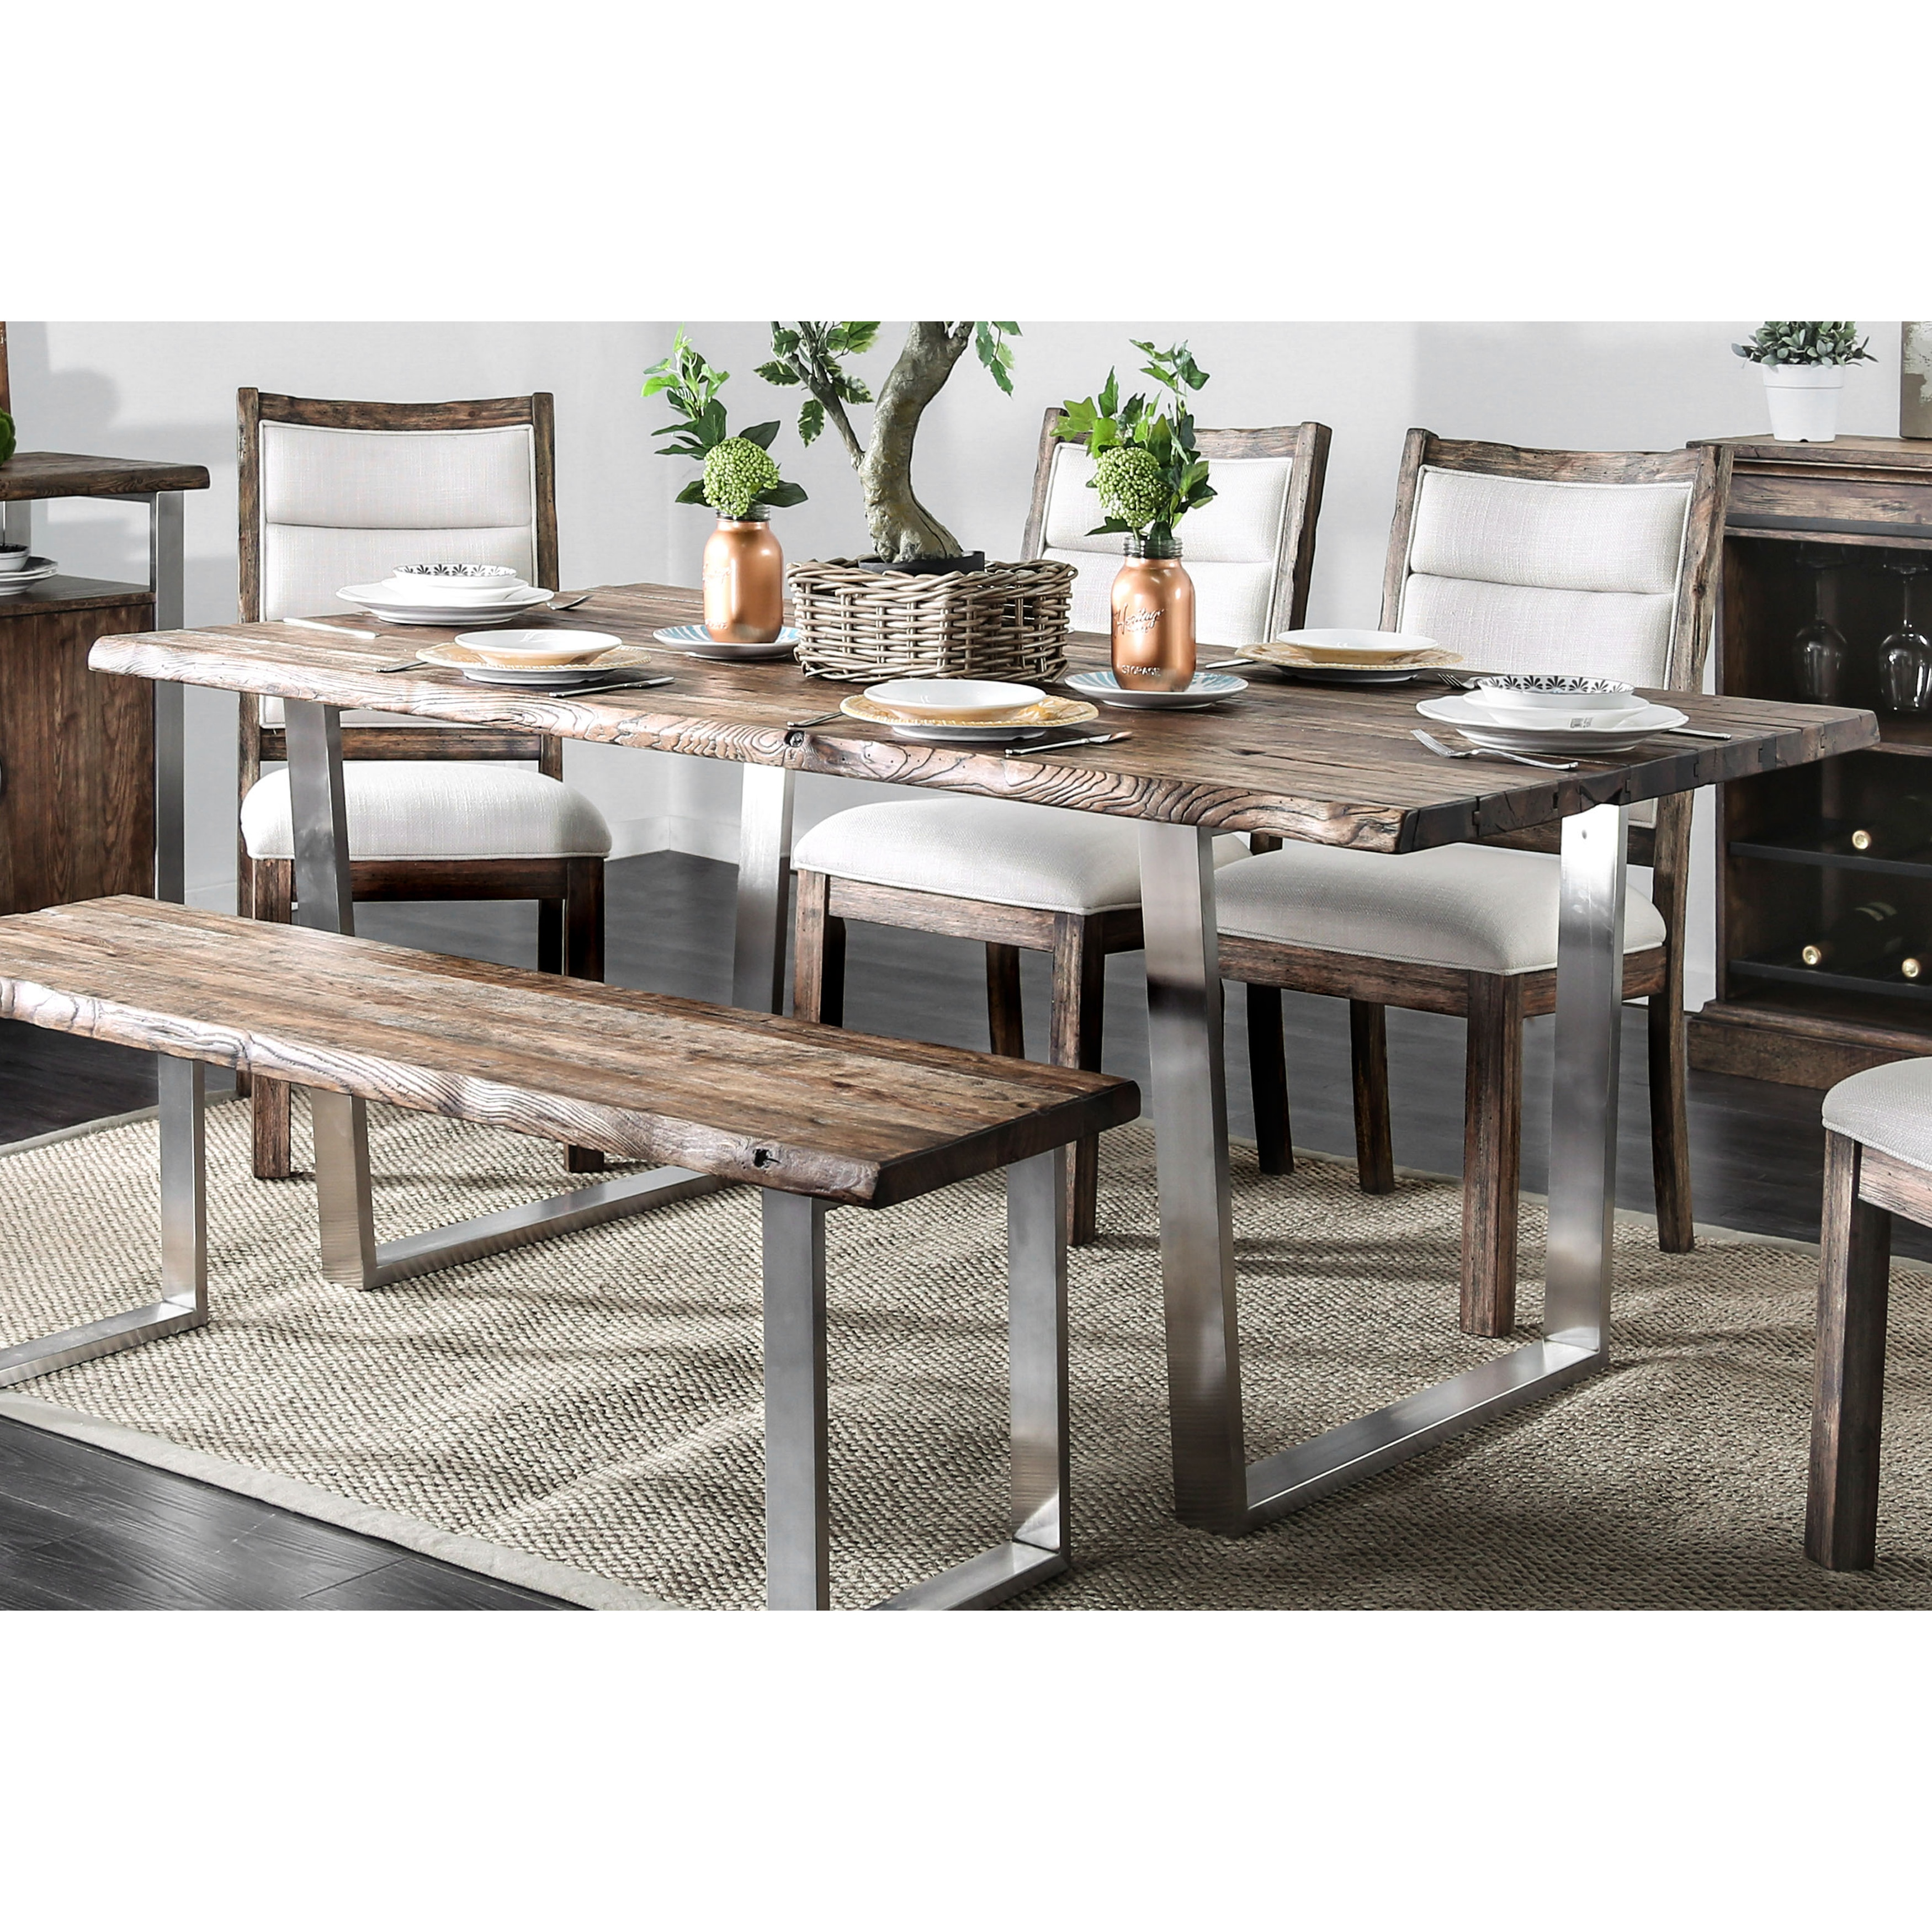 Carbon Loft Bern Rustic 76 Inch Dining Table